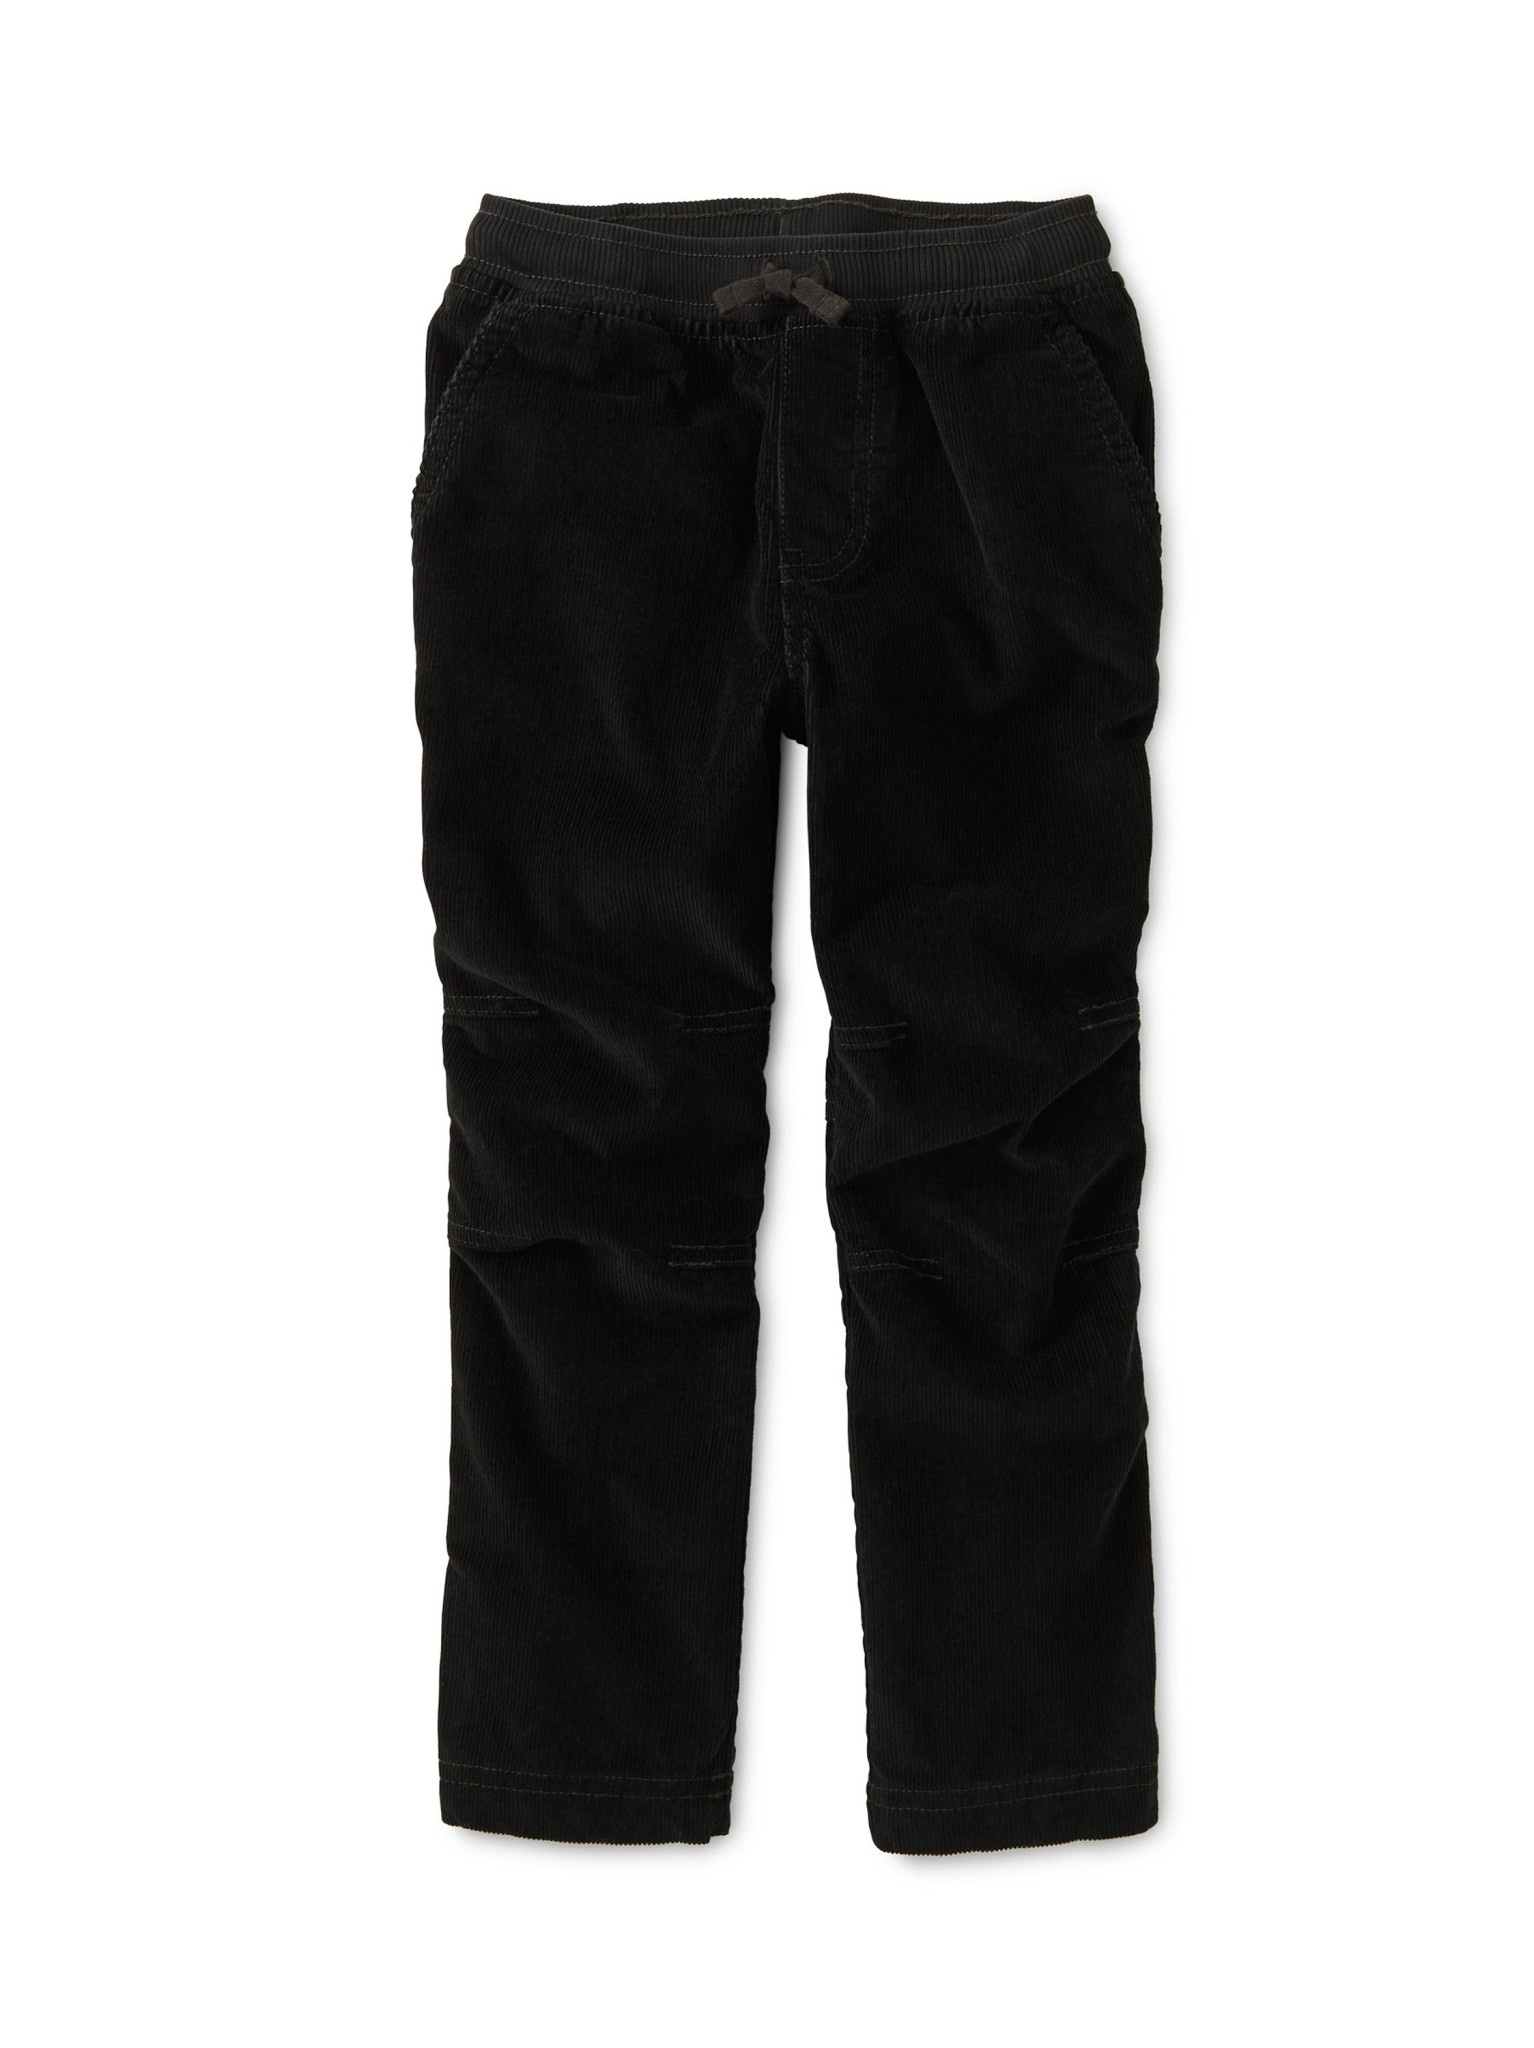 Tea Collection Black Corduroy Easy Pants